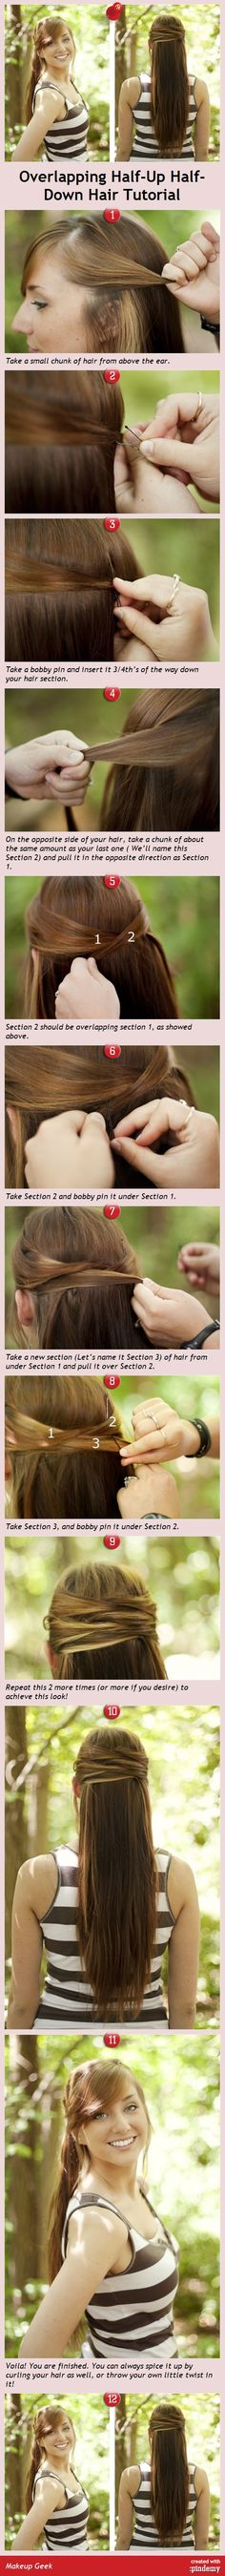 Overlapping Half-Up Half-Down Hair Tutorial via pindemy.com